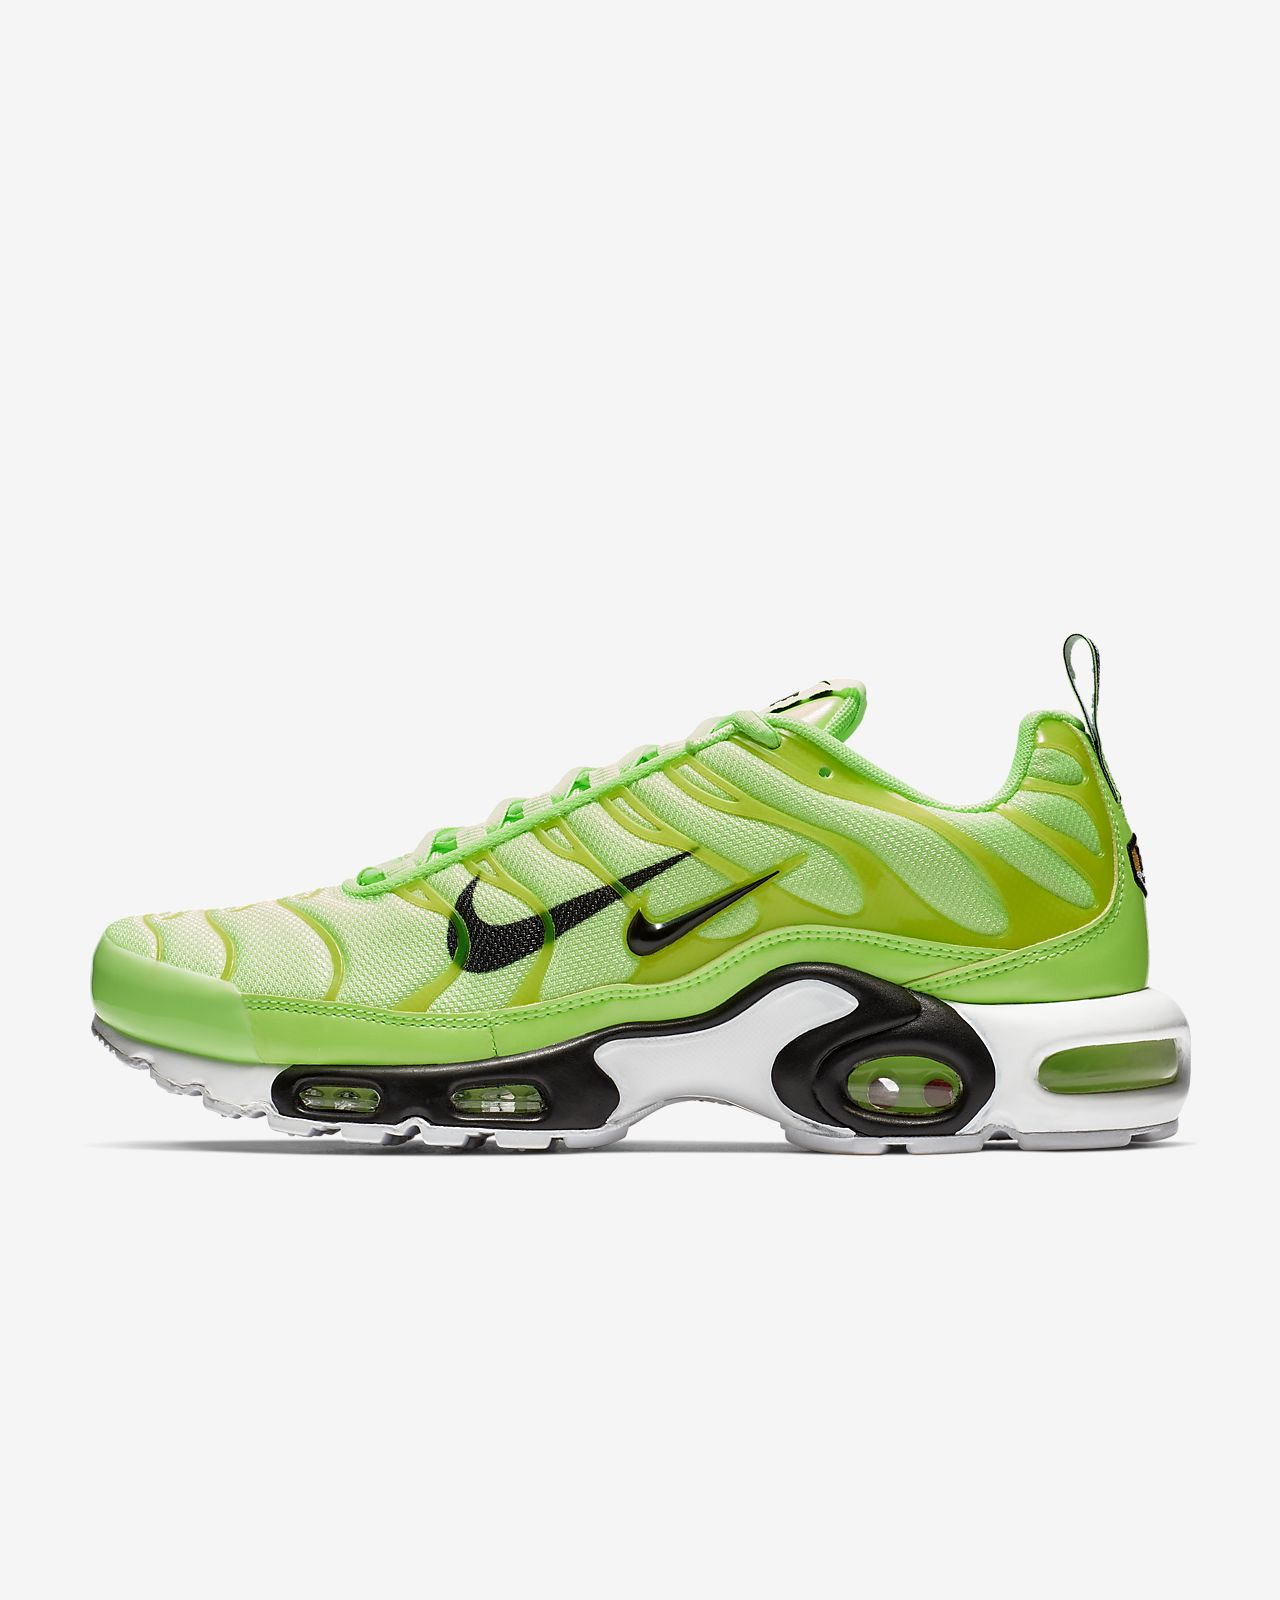 5fef7f53be9b9 Nike Air Max Plus Premium Men s Shoe. Nike.com RO